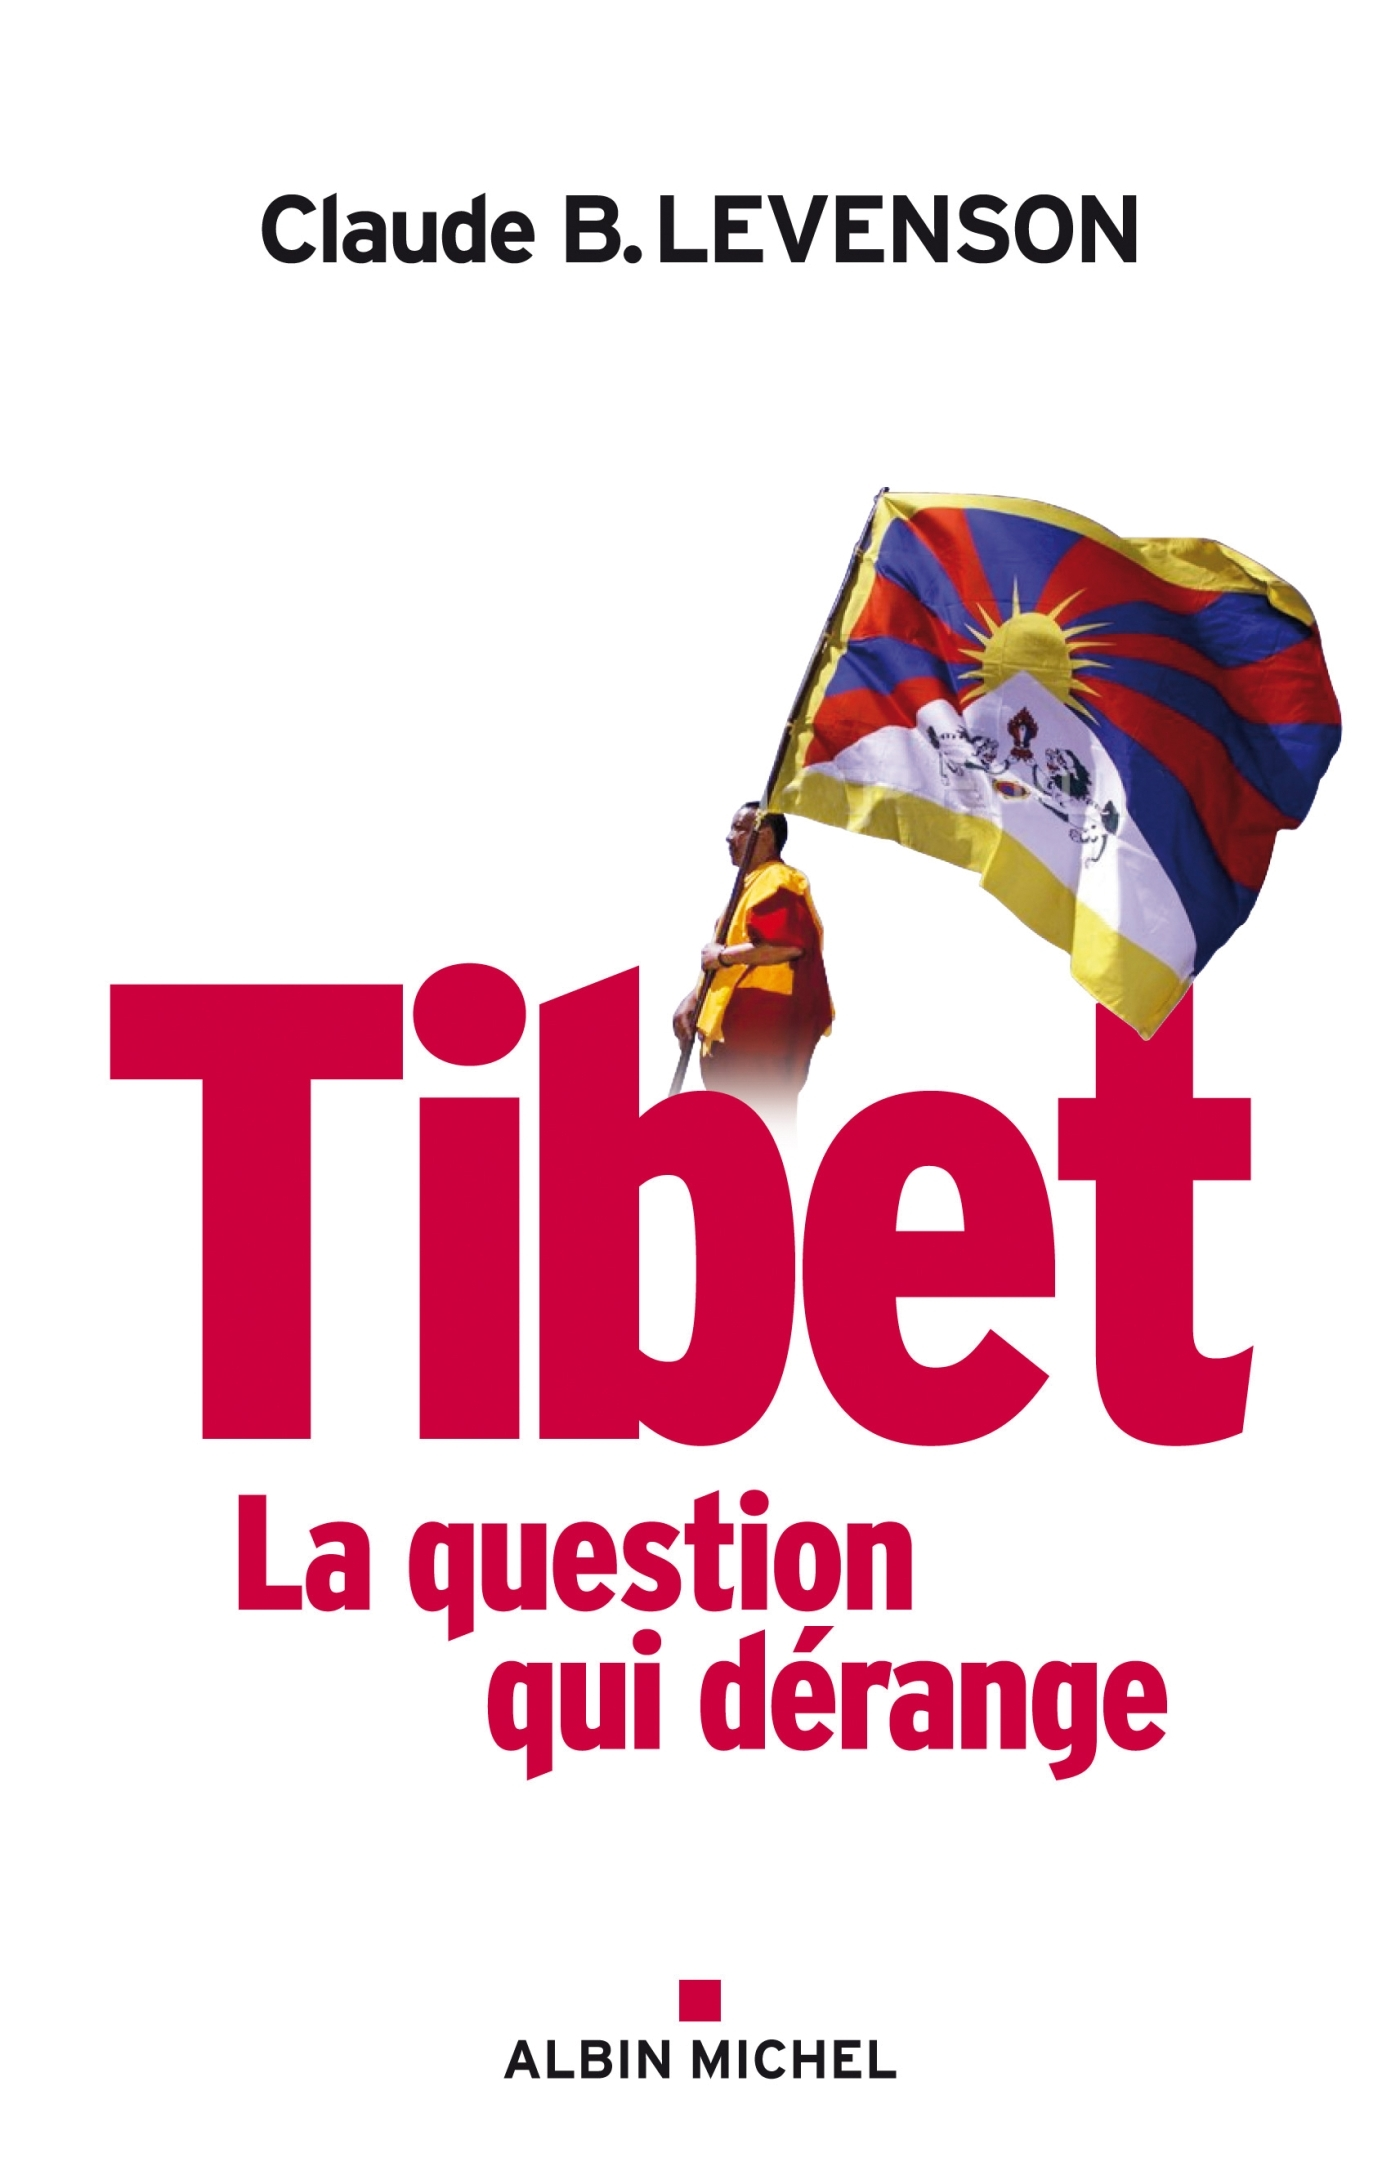 TIBET, LA QUESTION QUI DERANGE